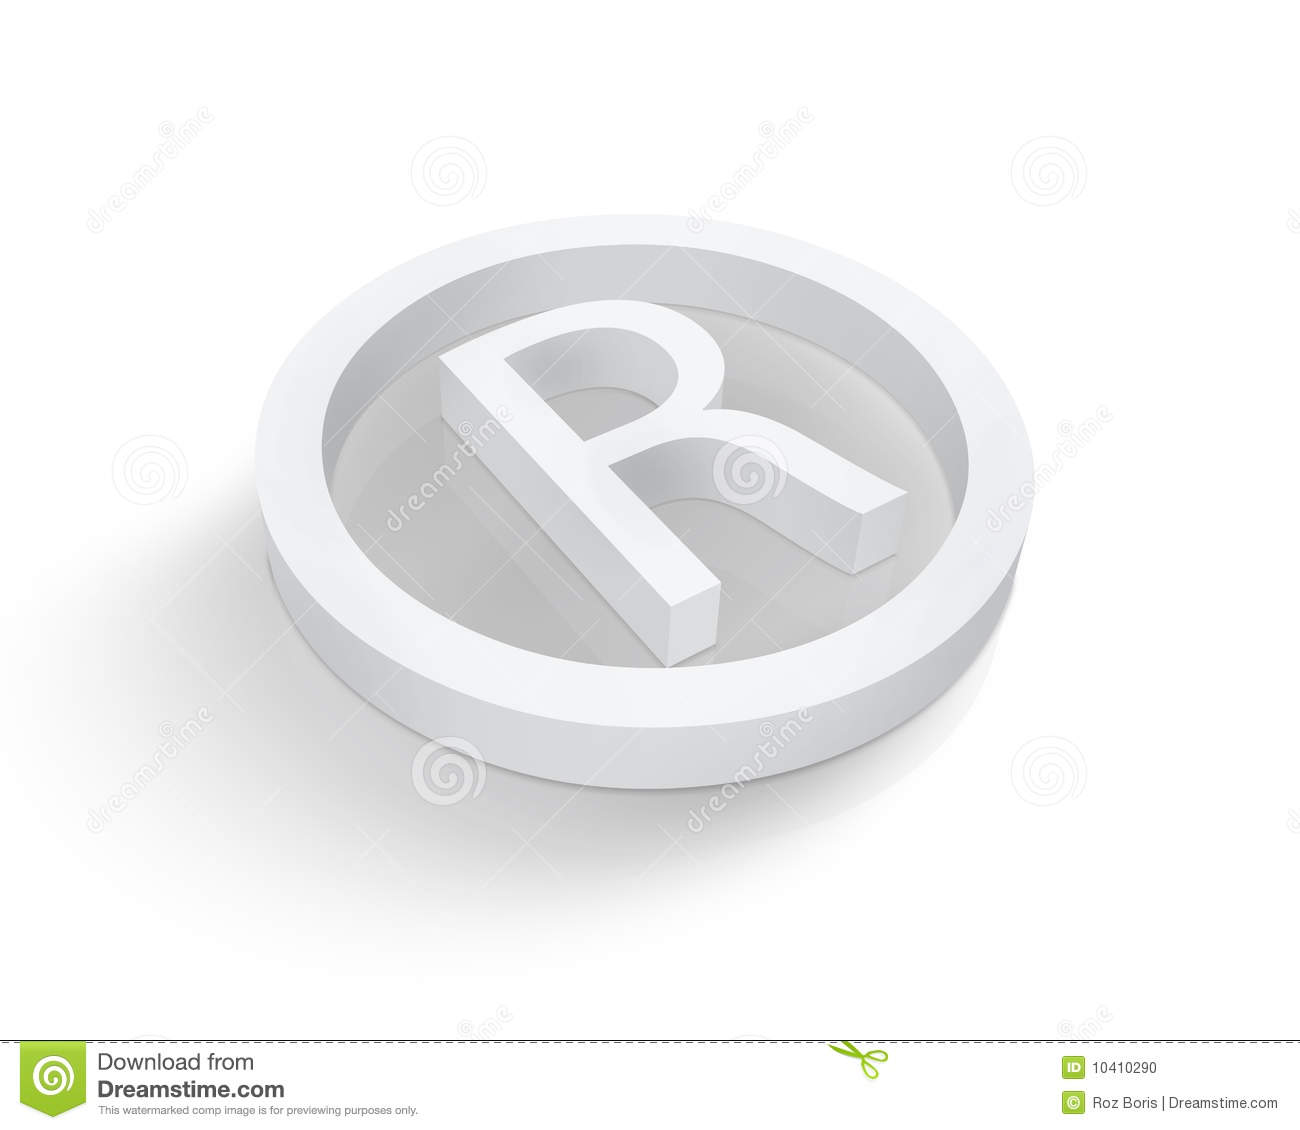 how to create registered trademark symbol